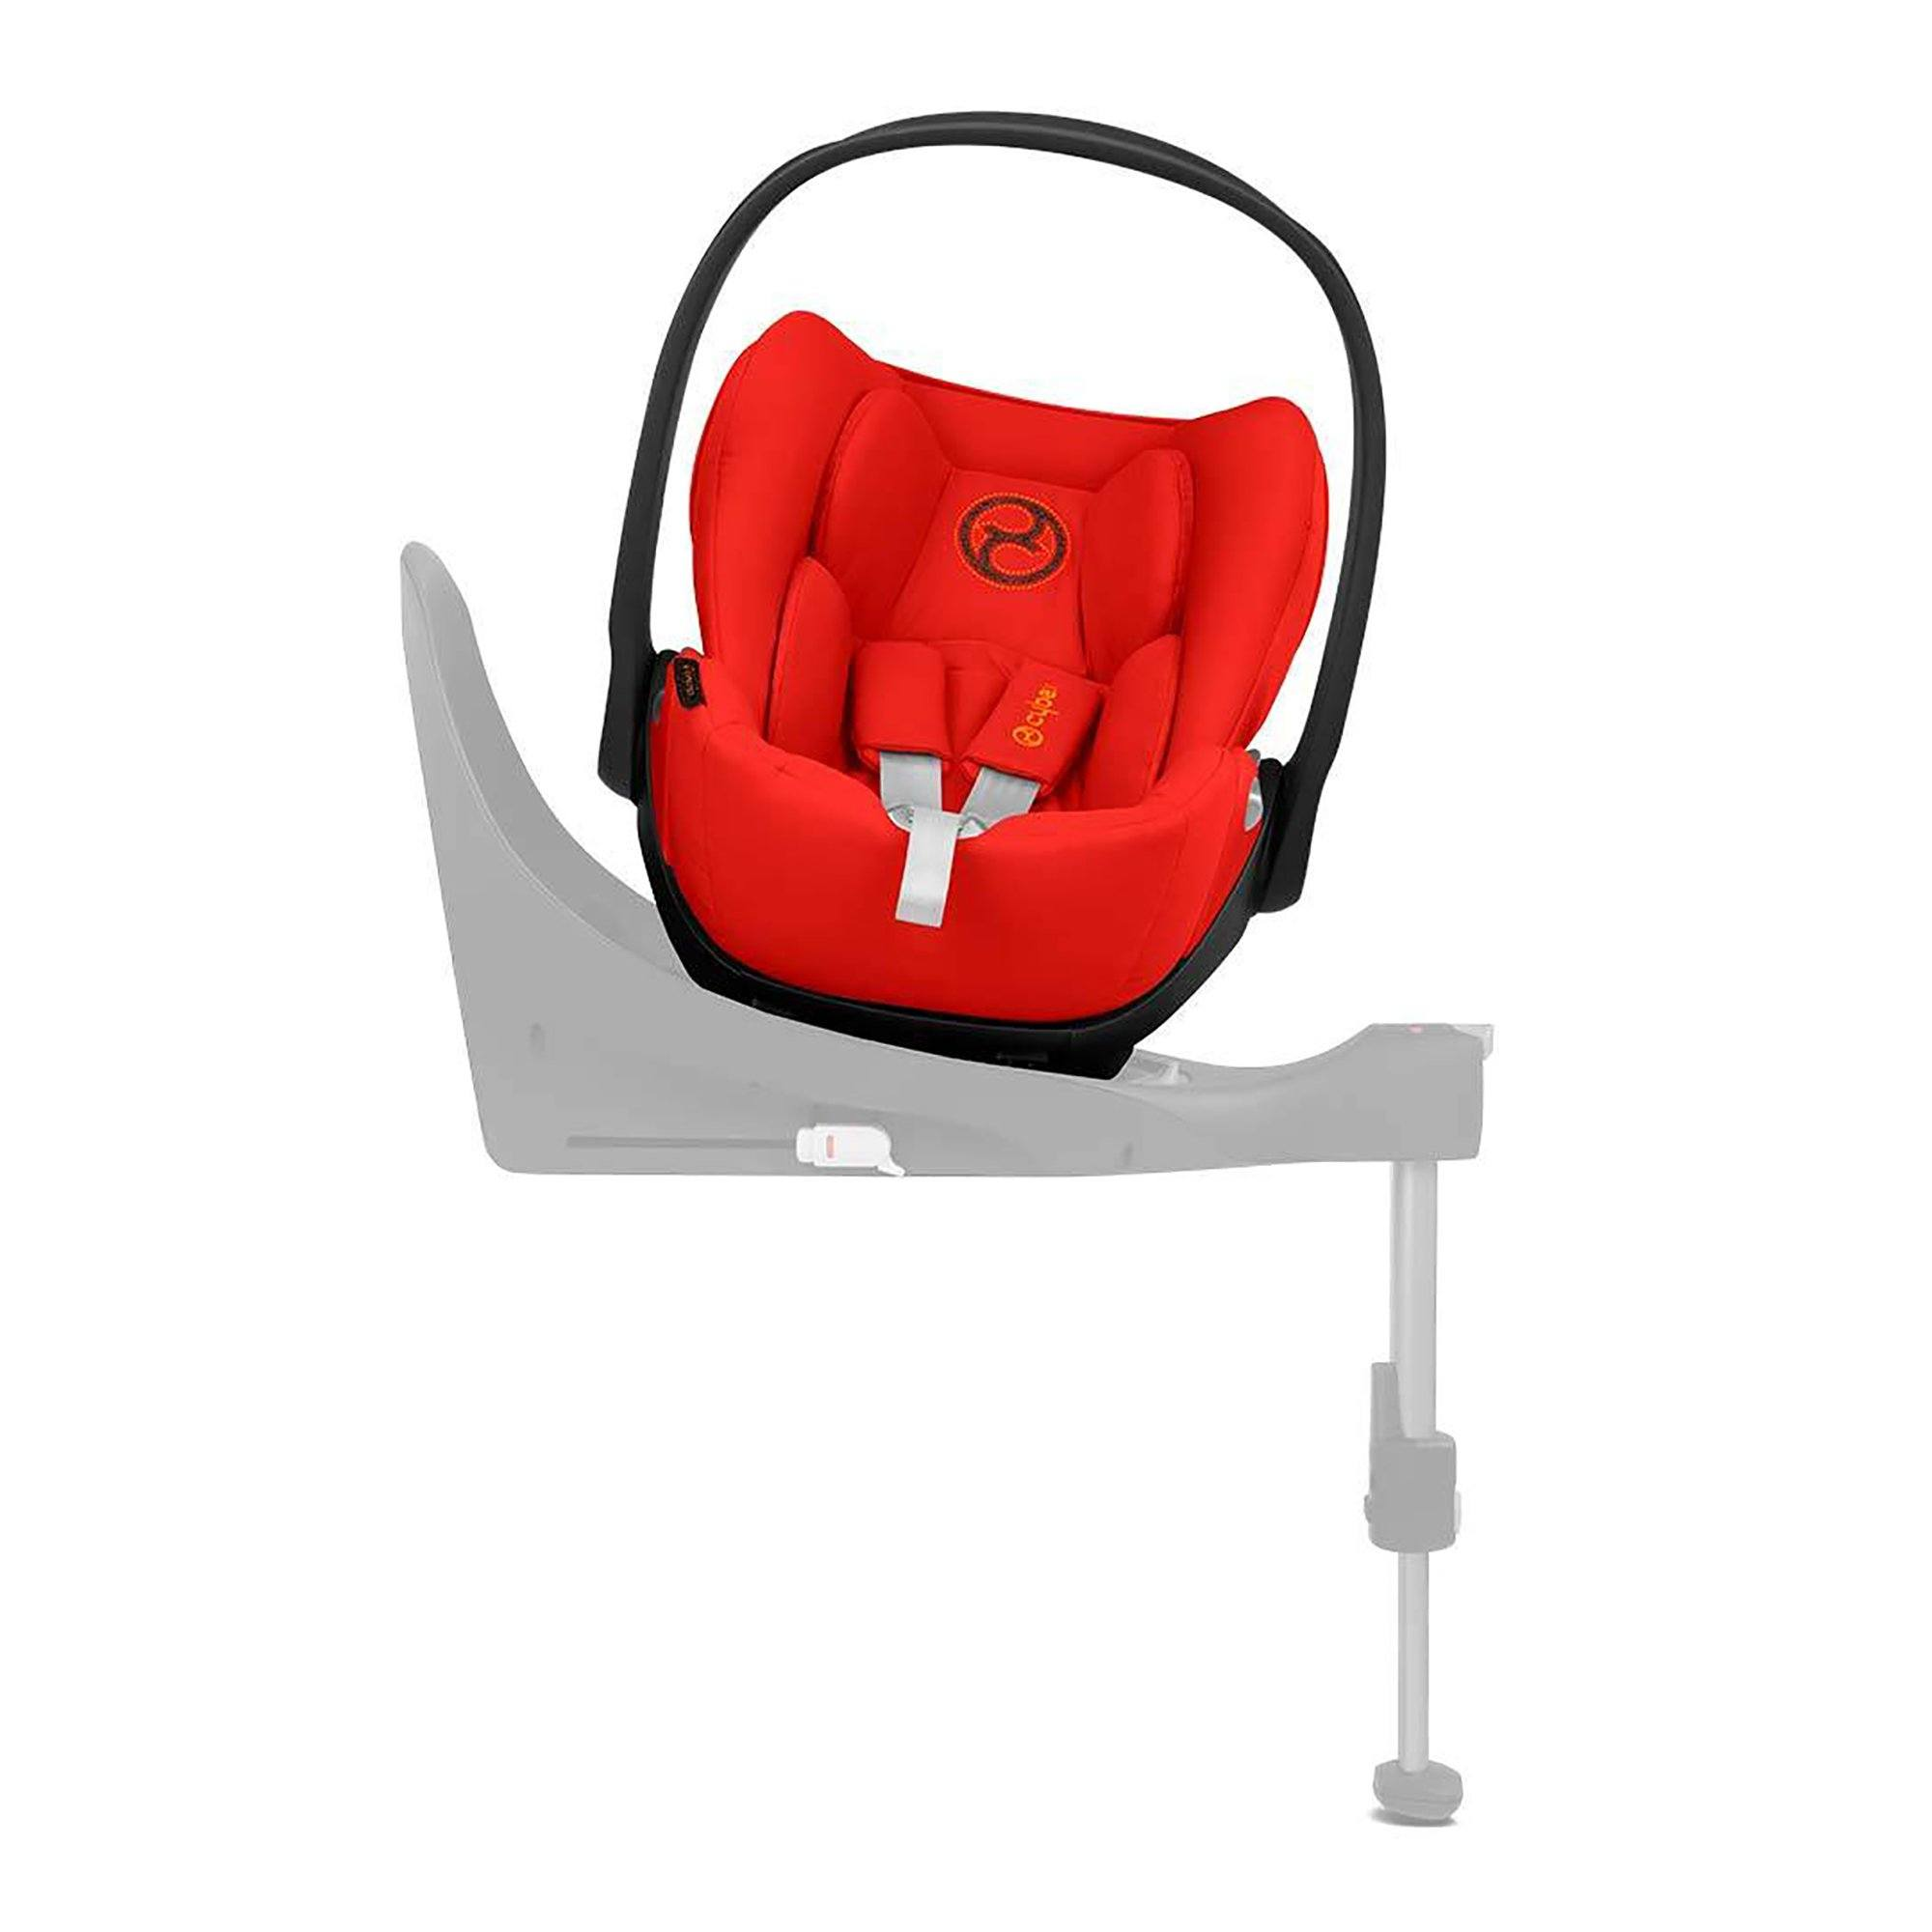 Cybex Cloud Z i-Size PLUS infant car seat - Autumn Gold (burnt red) - Pushchair Expert